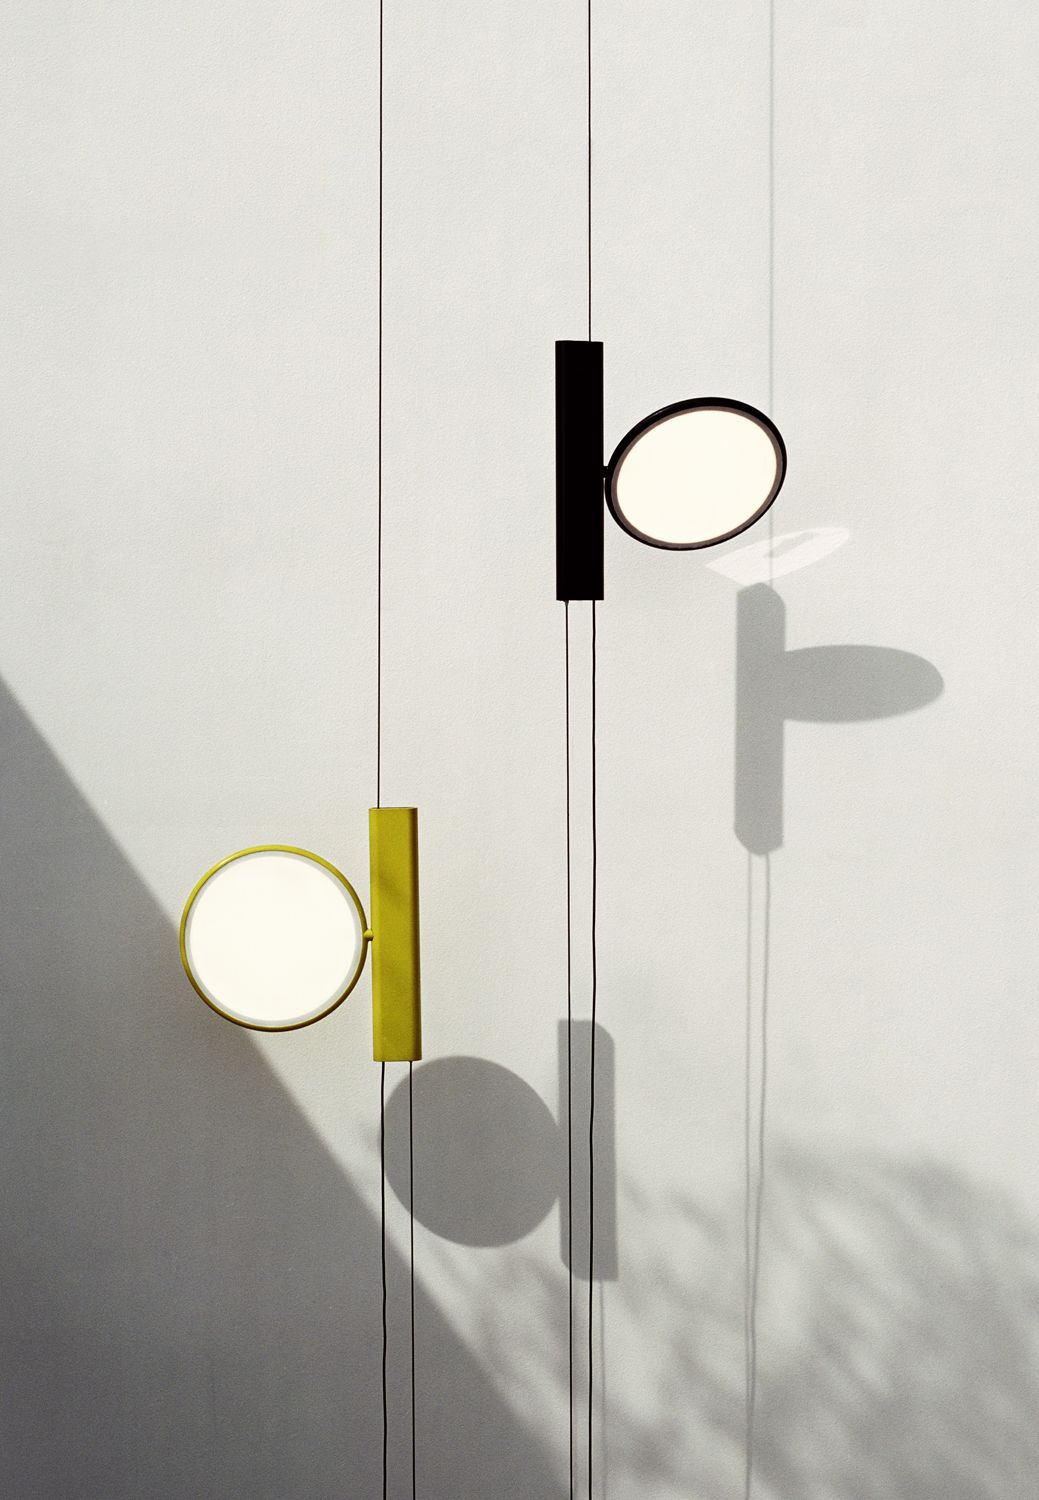 Konstantin Grcic pays homage to Achille Castiglioni\u0027s iconic ...